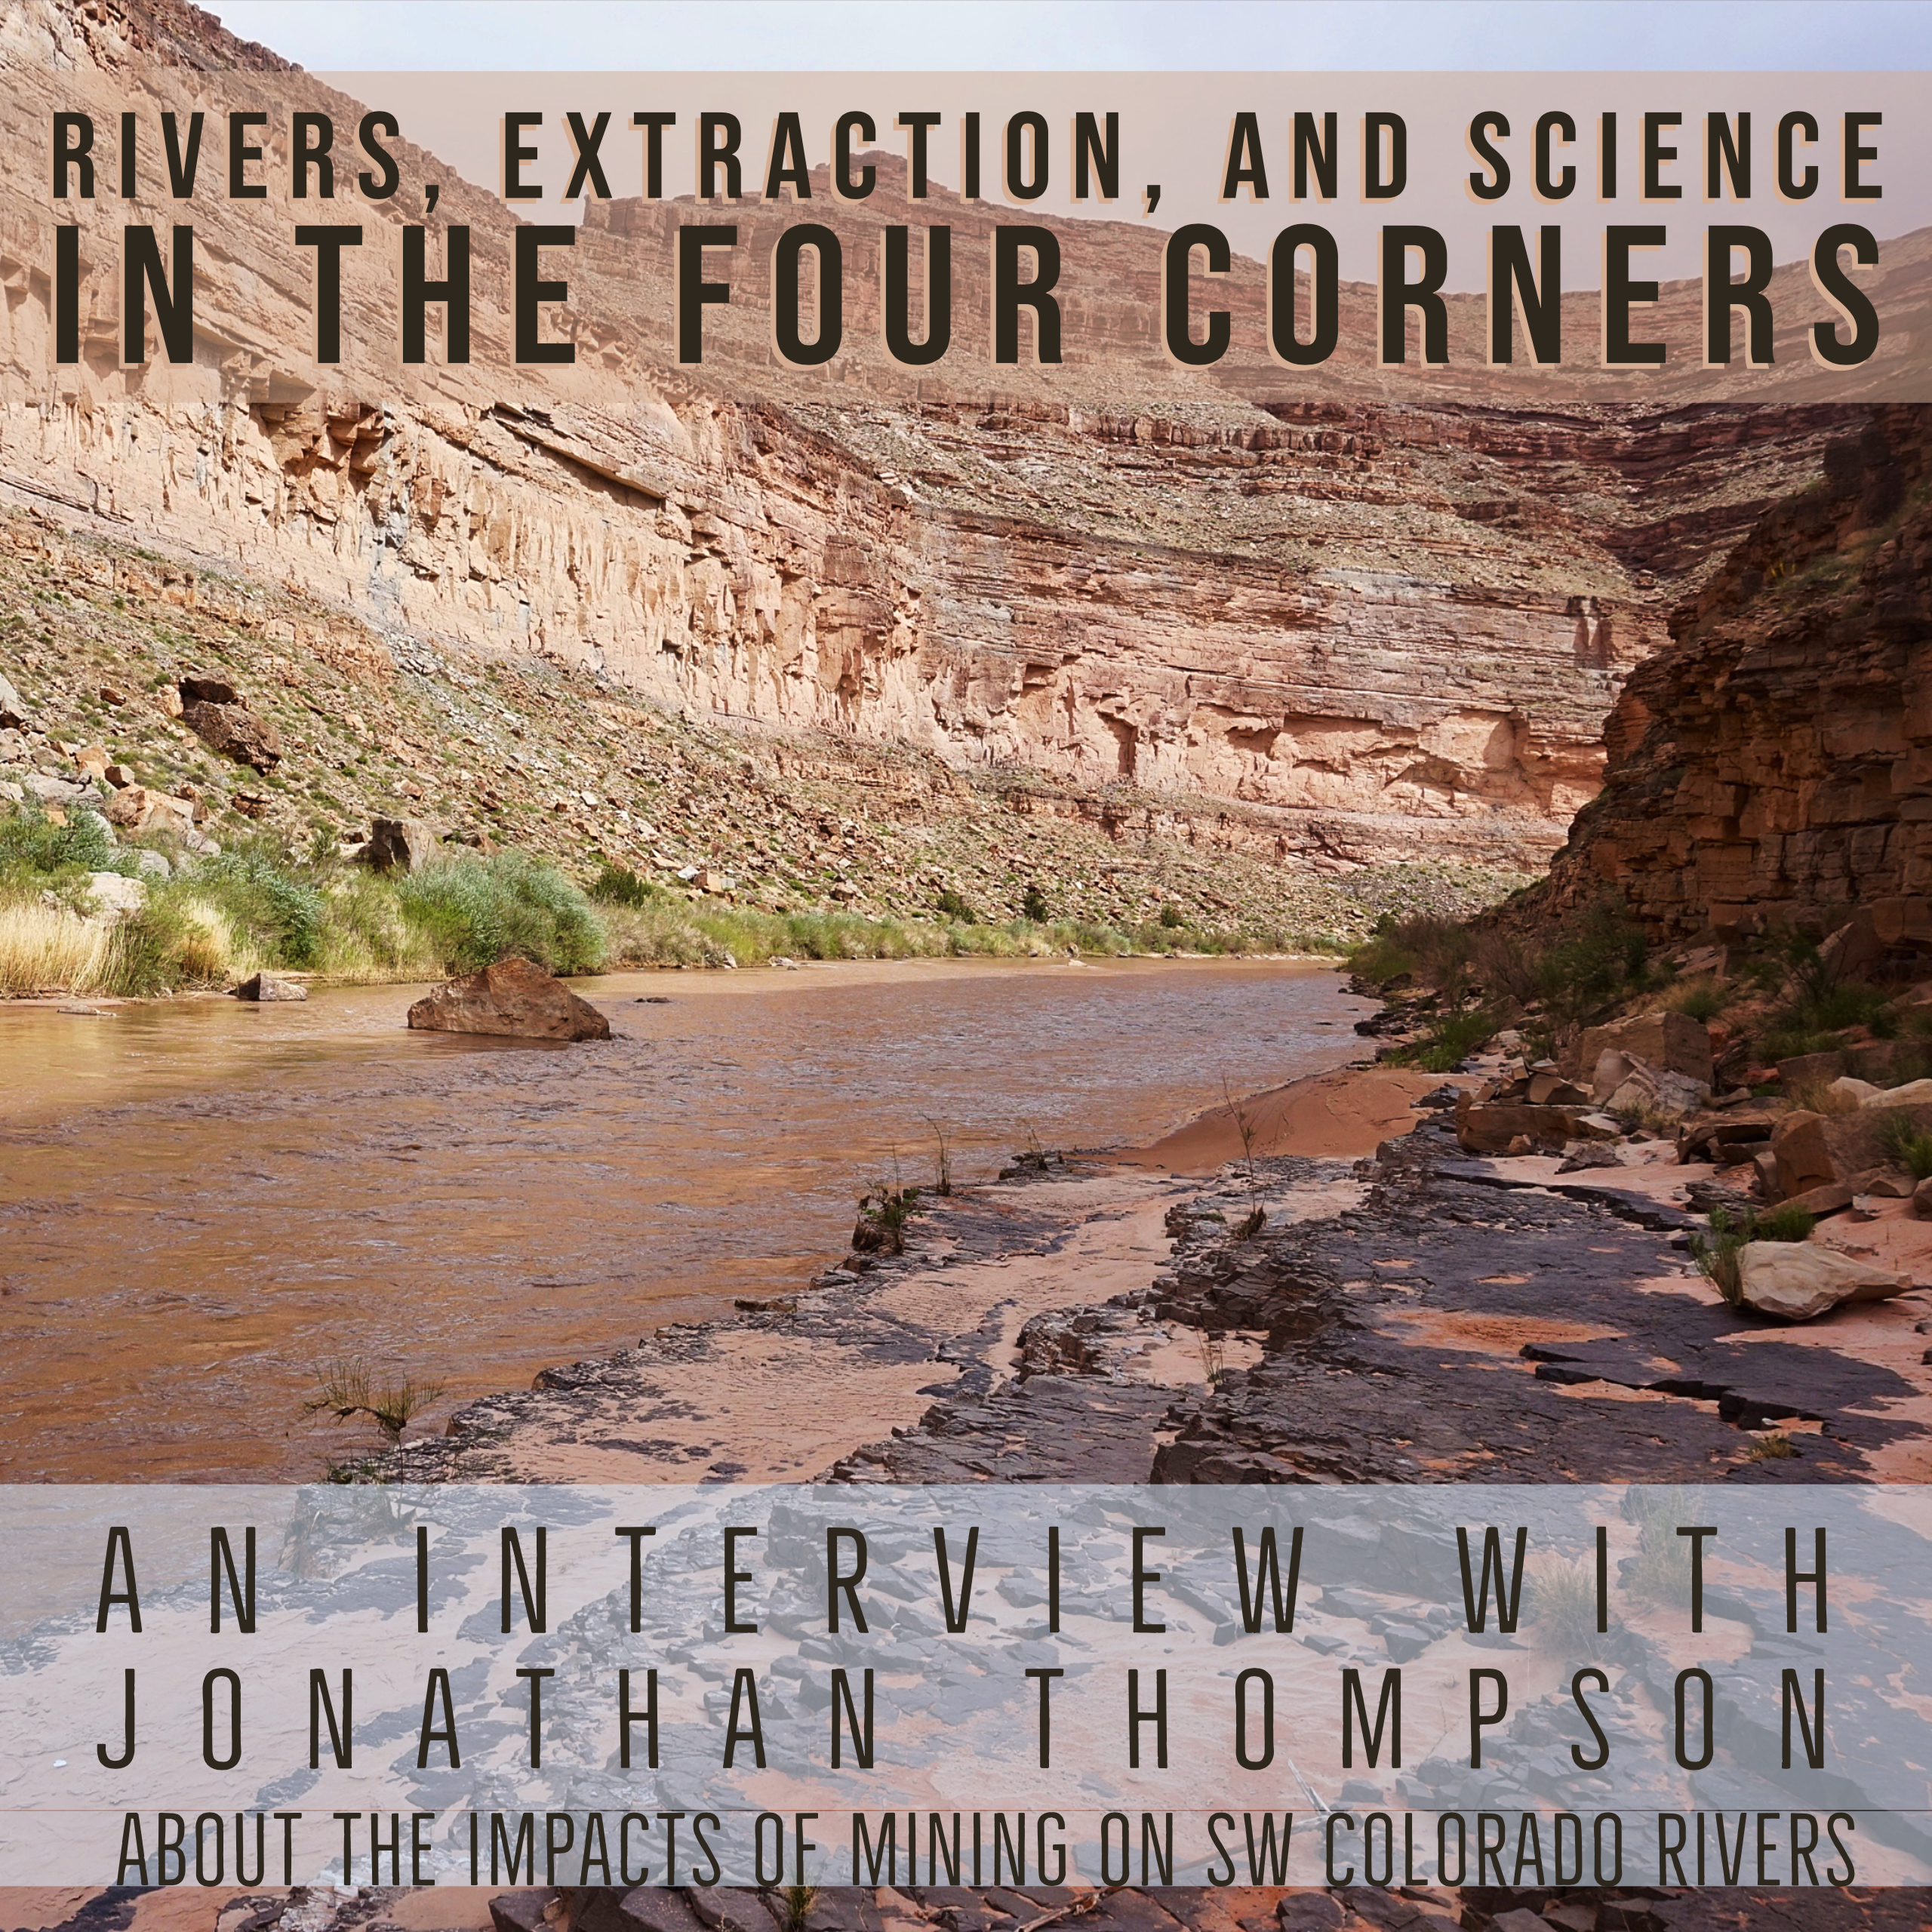 Rivers, Extraction and Science in the Four Corners